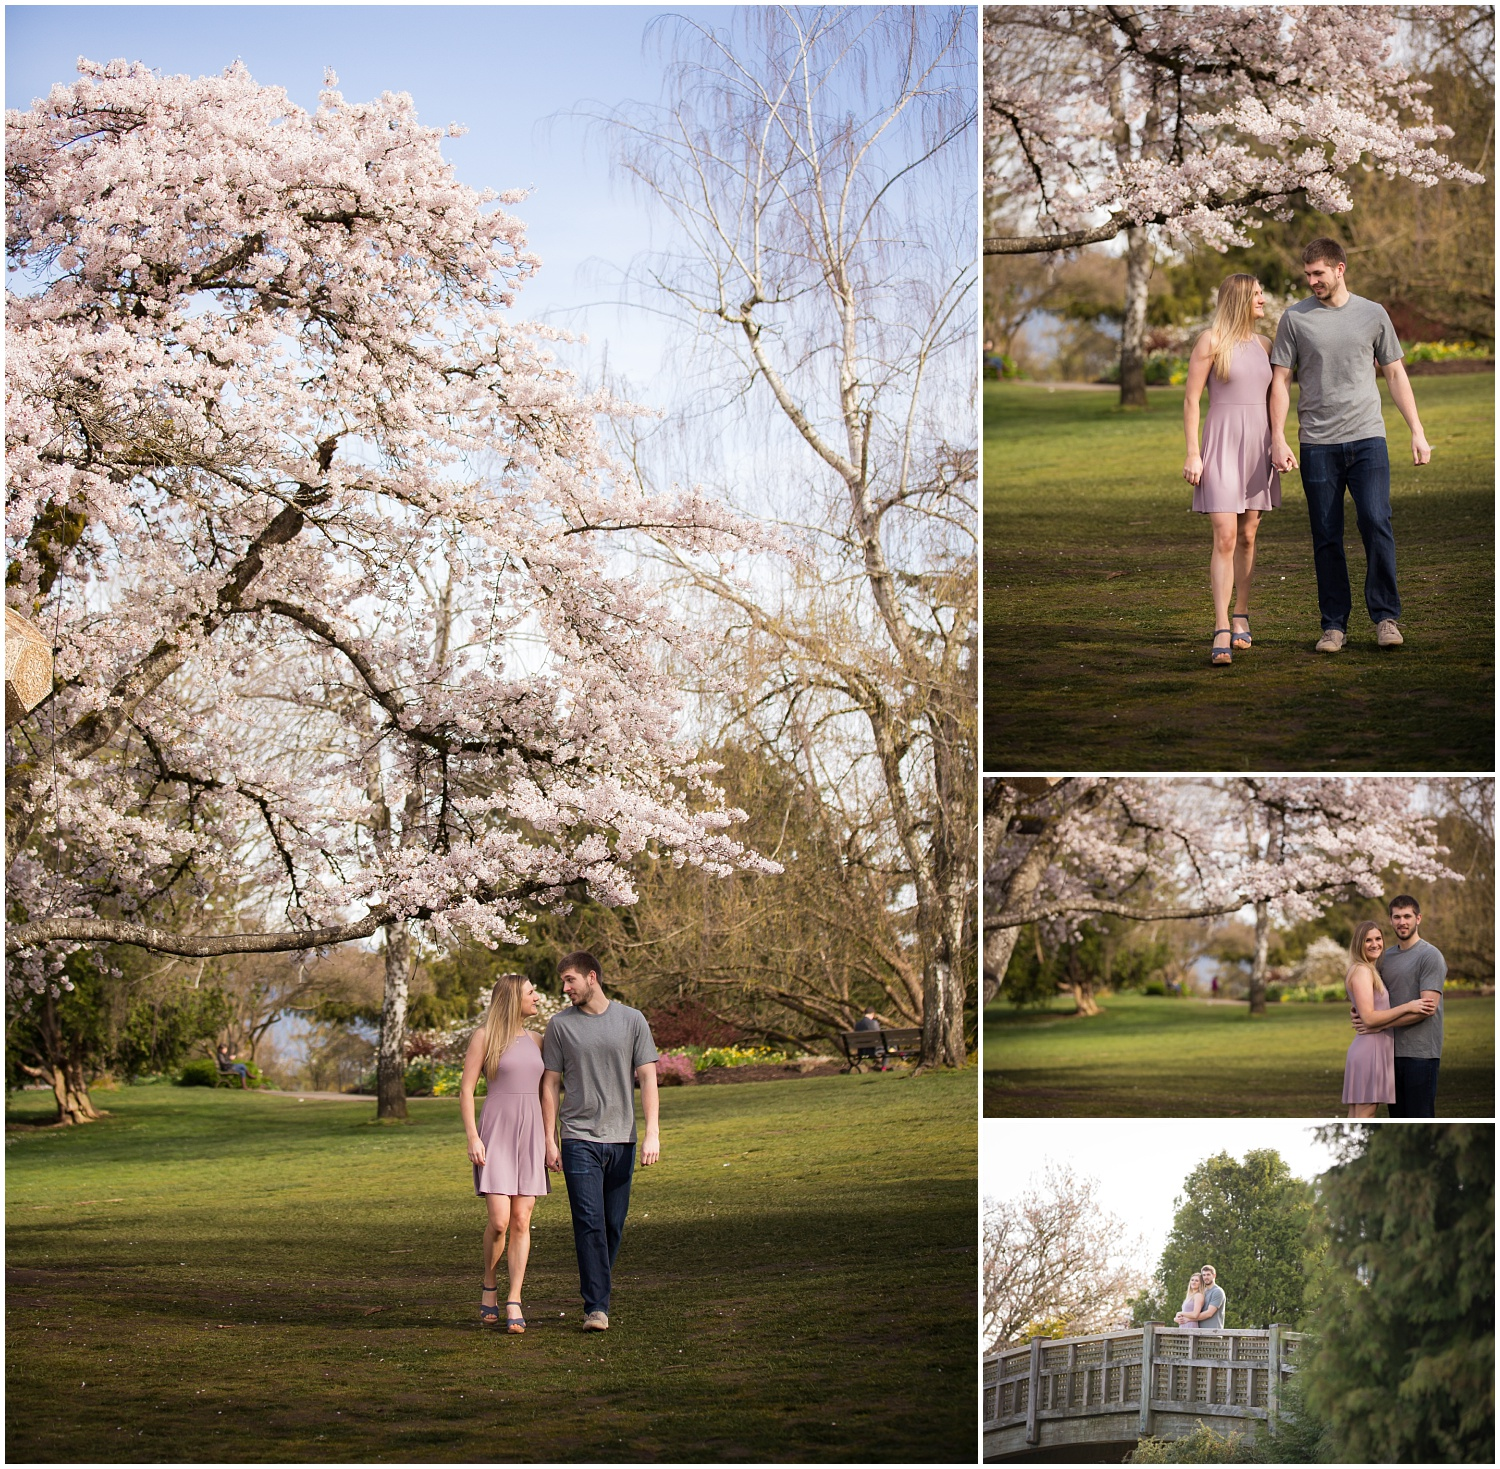 Amazing Day Photography - Cherry Blossom Engagement Session - Queen Elizabeth Park Engagement Session - Vancouver Engagement Photographer  (3).jpg